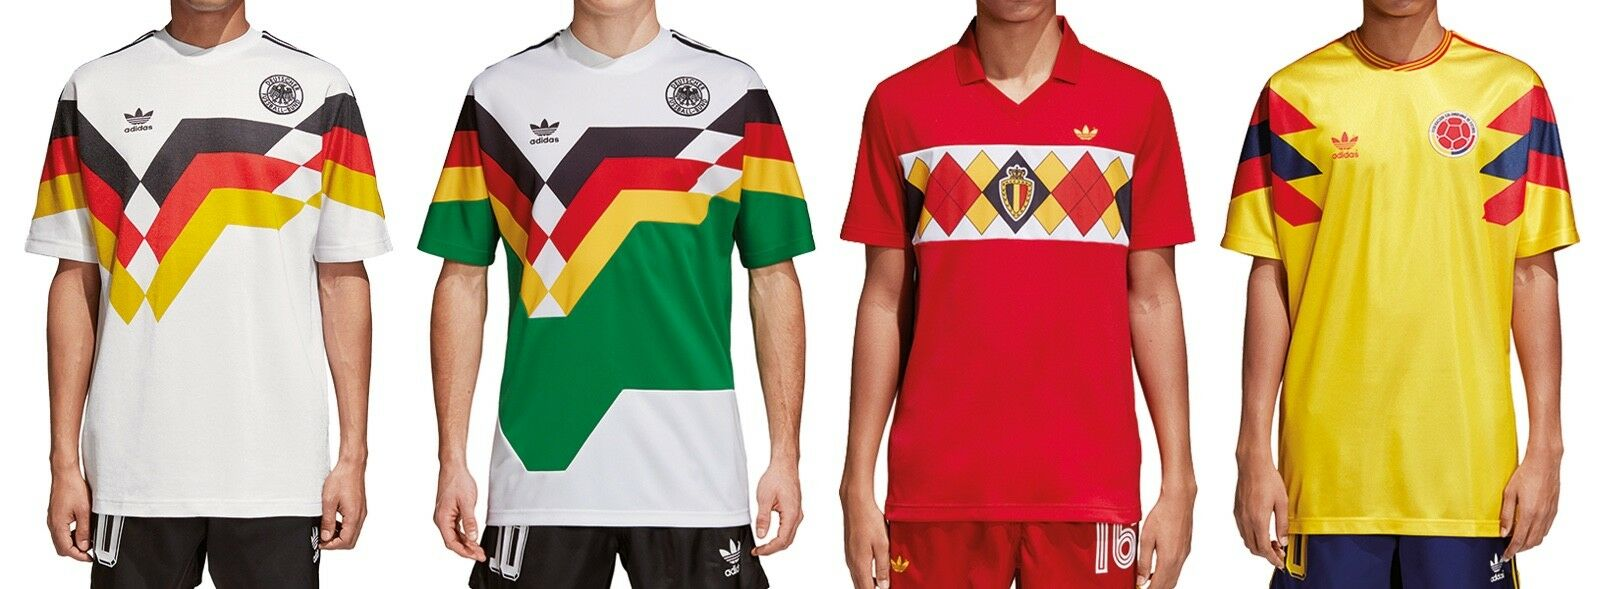 Adidas Originals Germany Colombia Belgium Jersey Trikot tricot T-Shirt